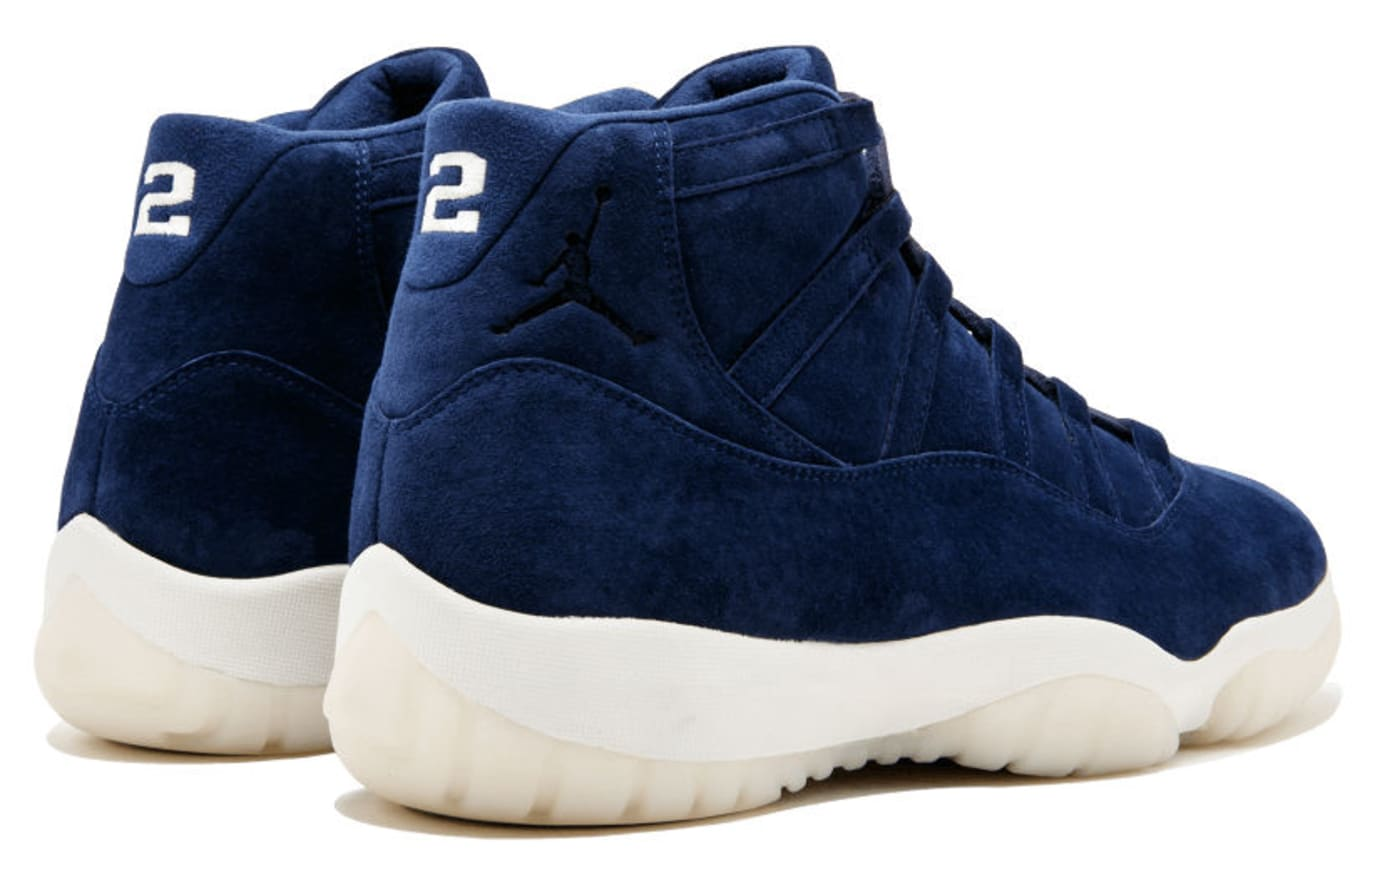 buy popular 8ea31 b4fe3 Derek Jeter Air Jordan 11 XI Navy Blue Suede $40,000 | Sole ...